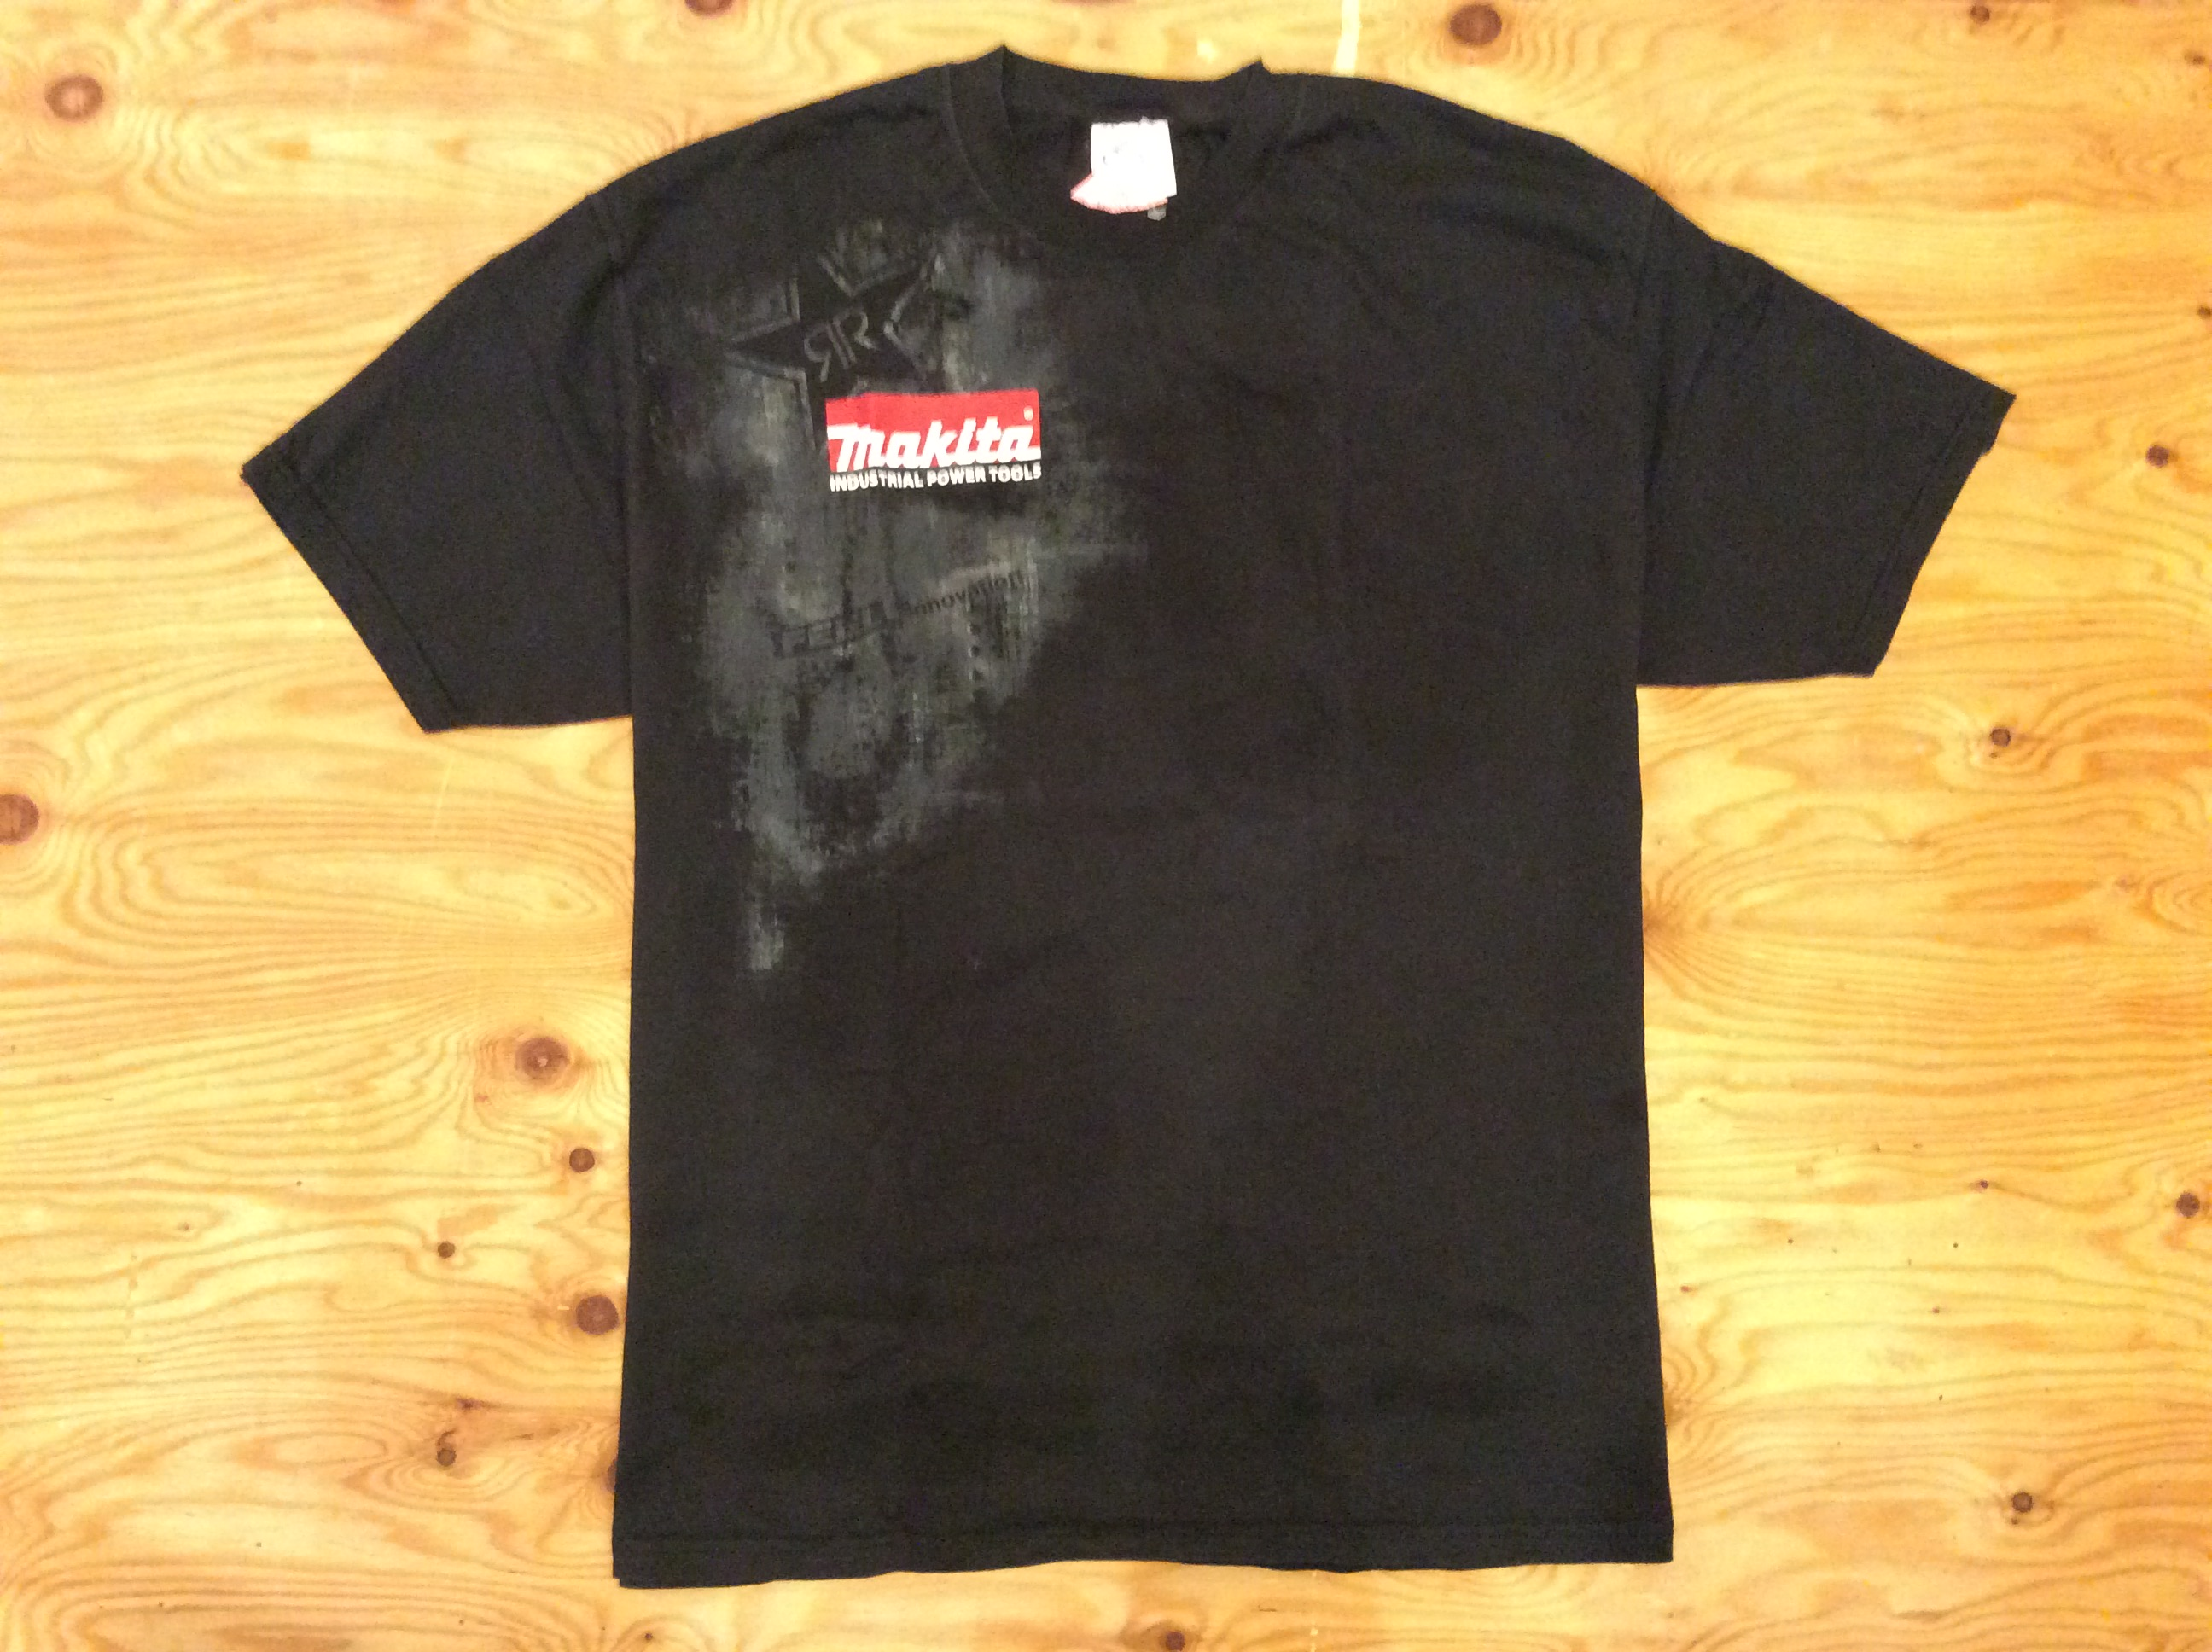 MAKITA / ROCKSTAR T-SHIRT / XL / USED